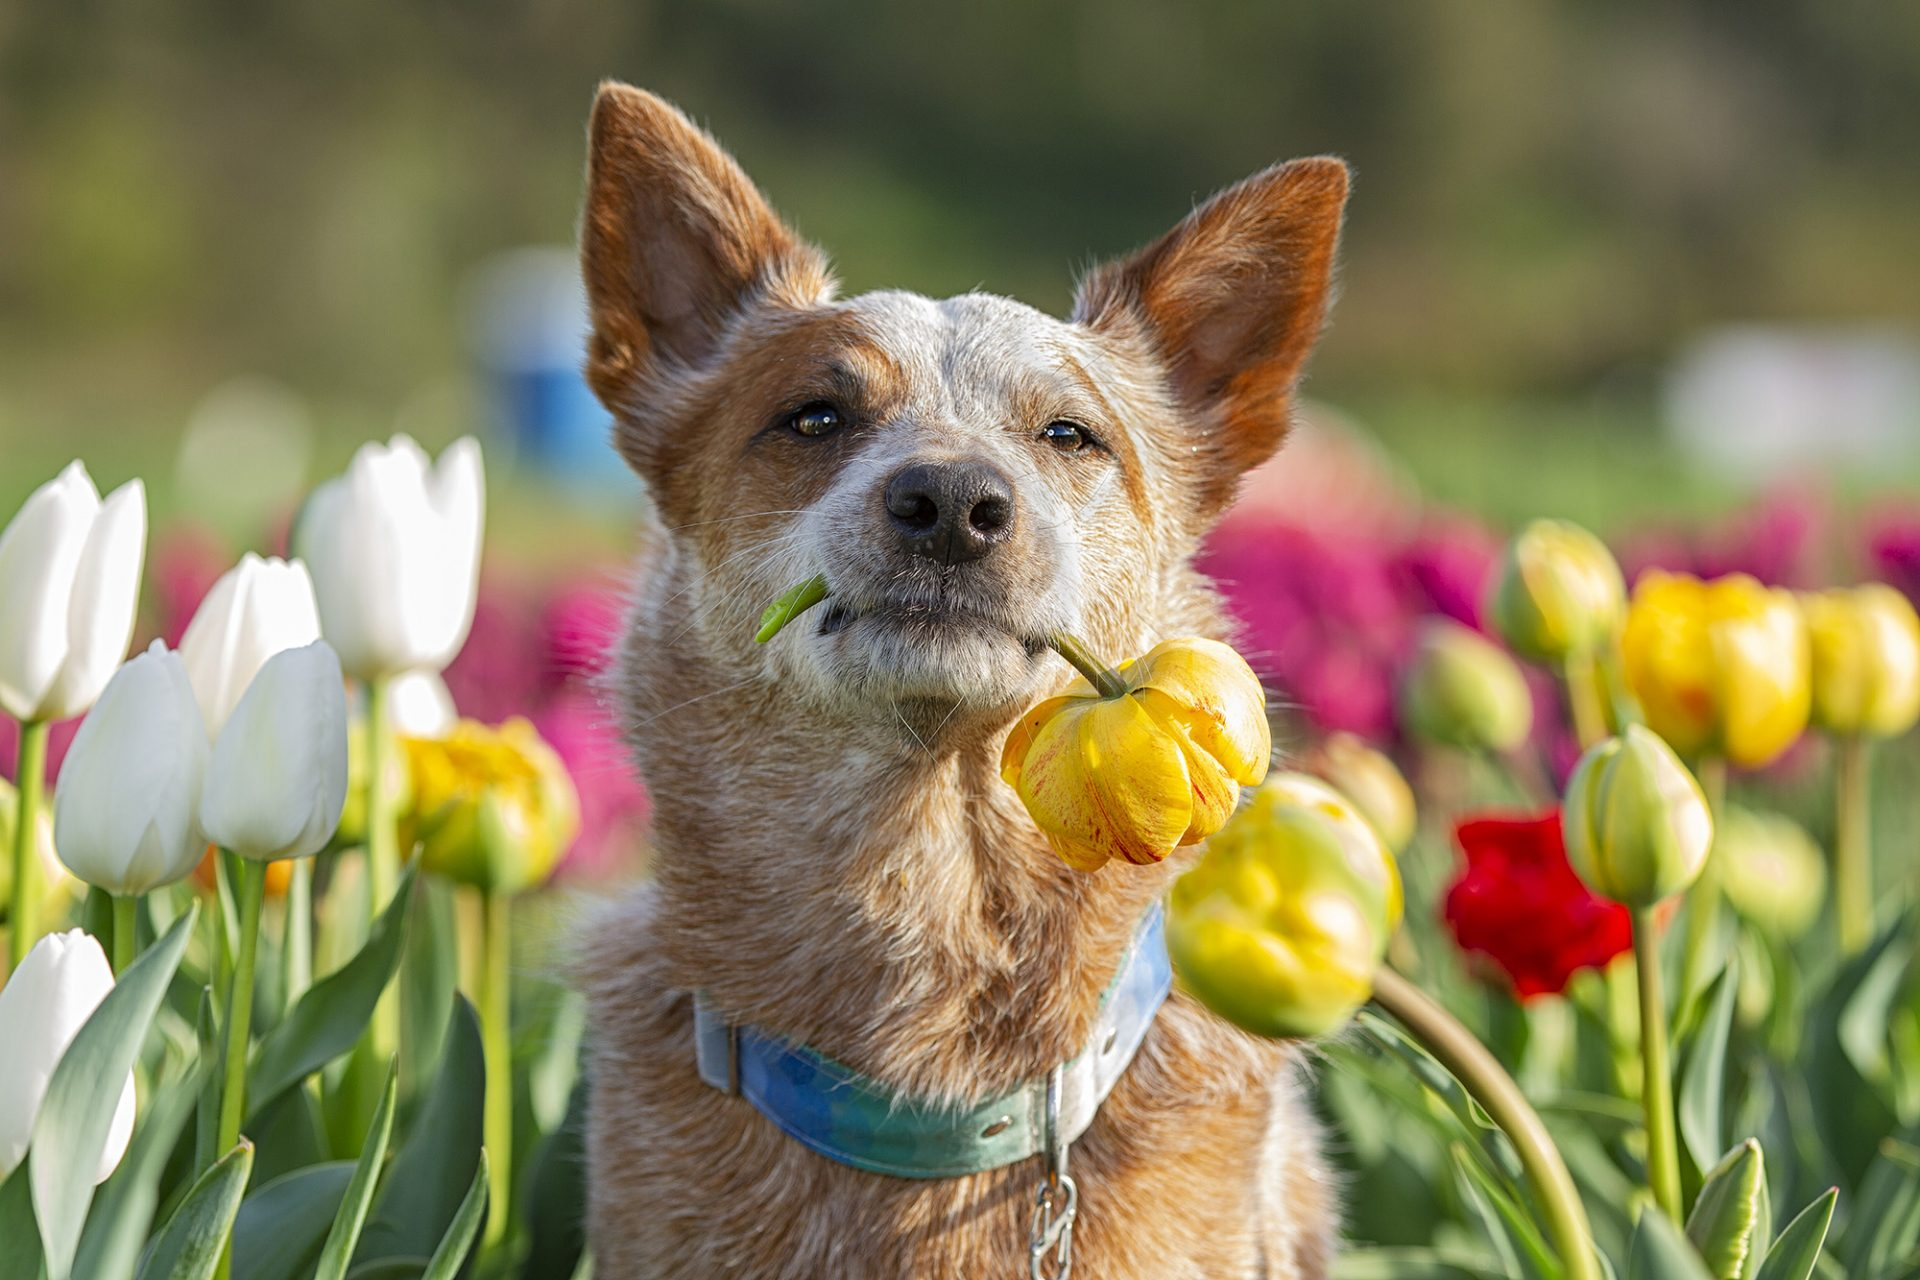 Australian Cattle Dog in tulips